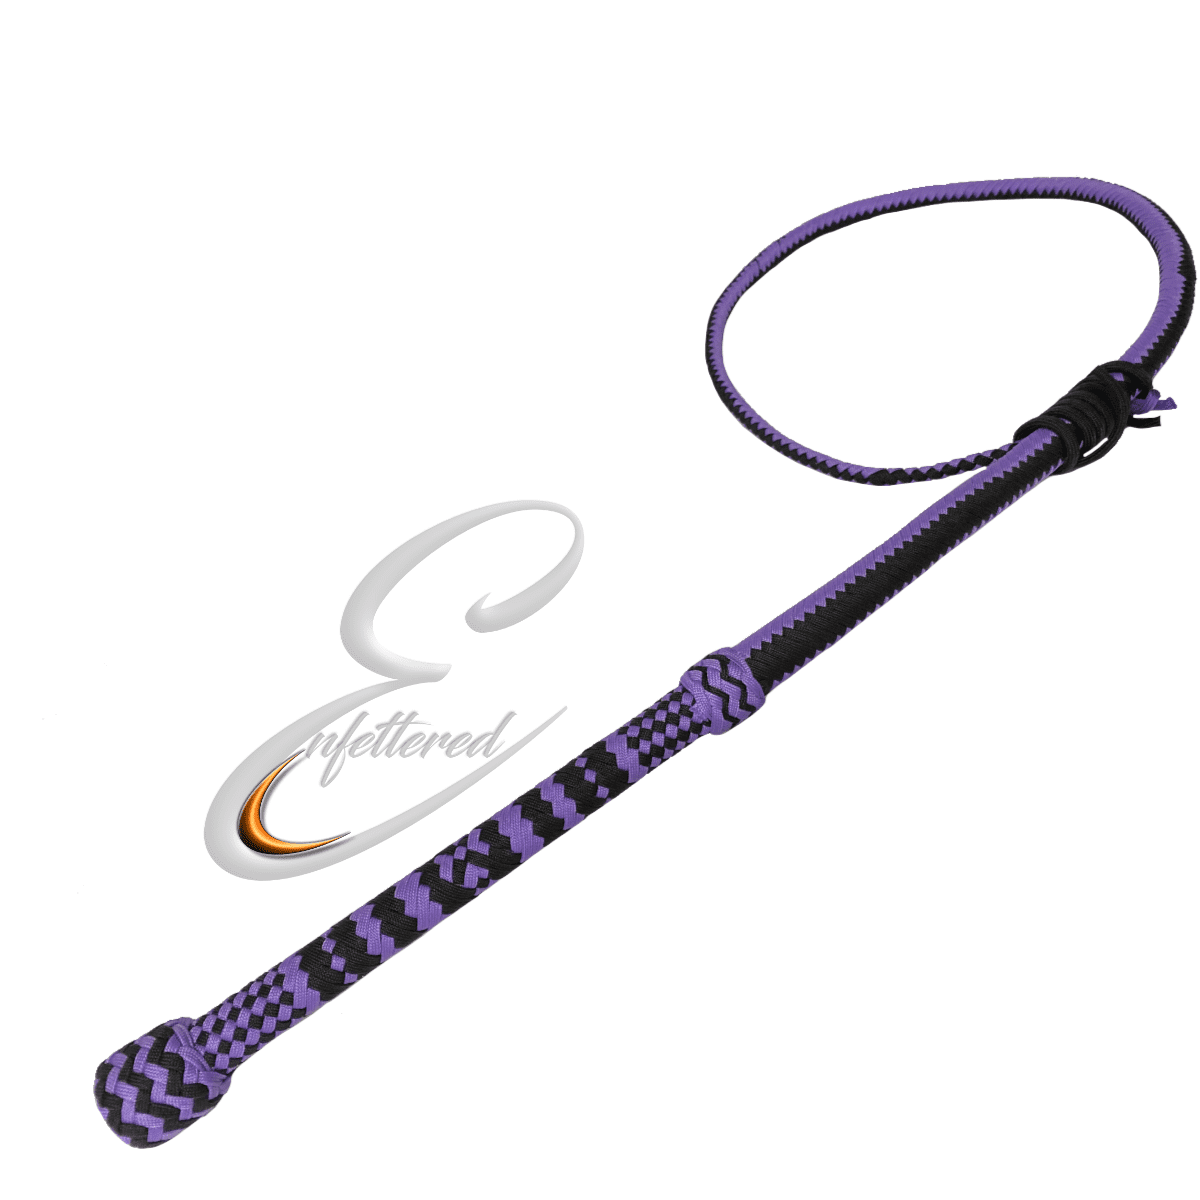 Enfettered Nylon Bullwhip 16 plait